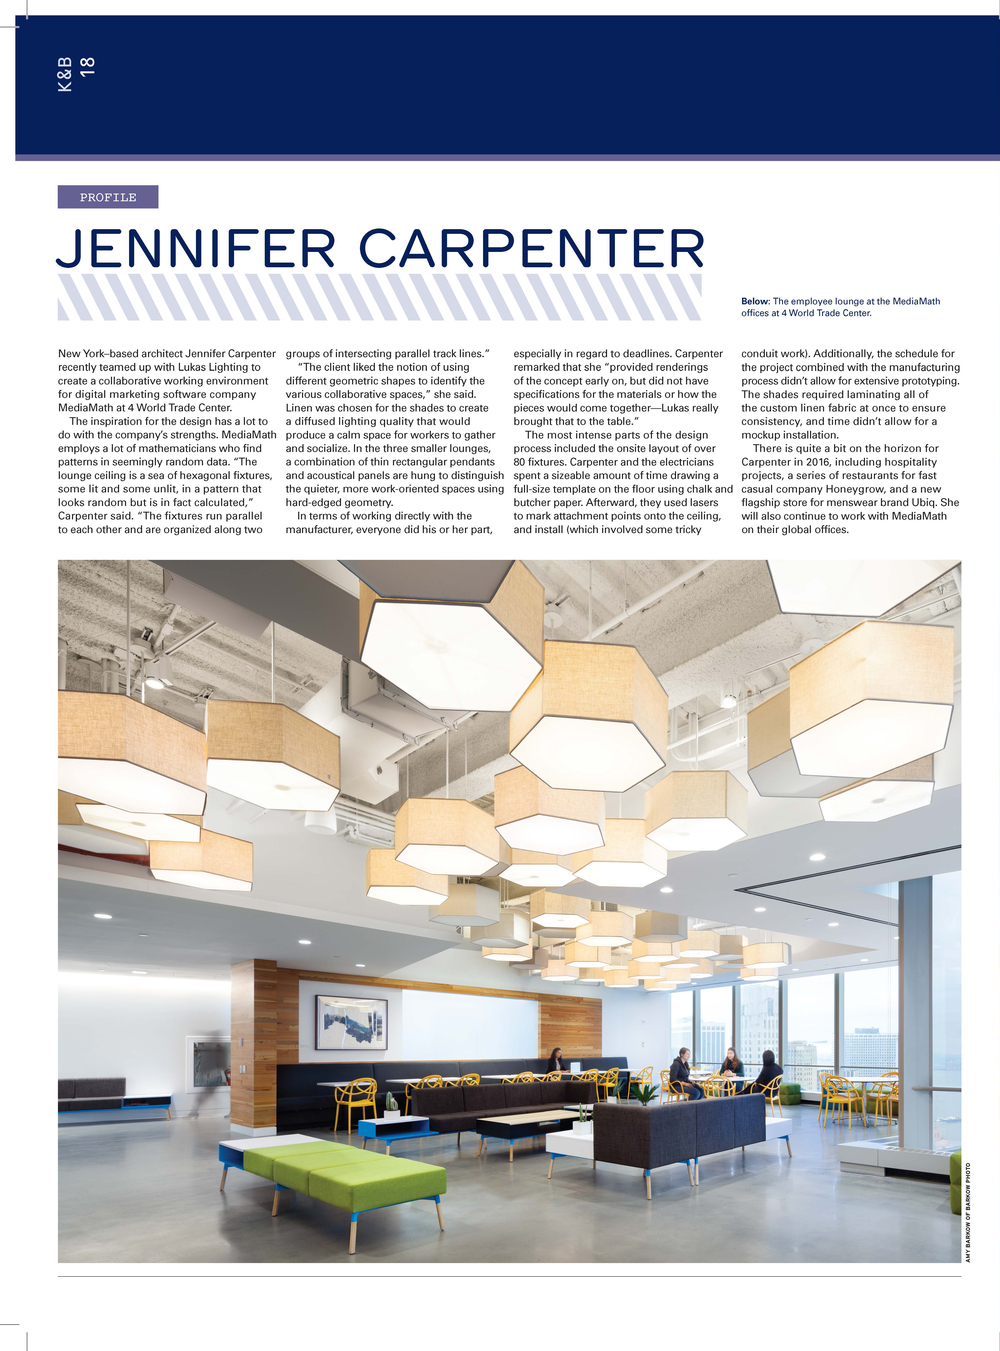 jennifer carpenter architects newspaper media math.jpg